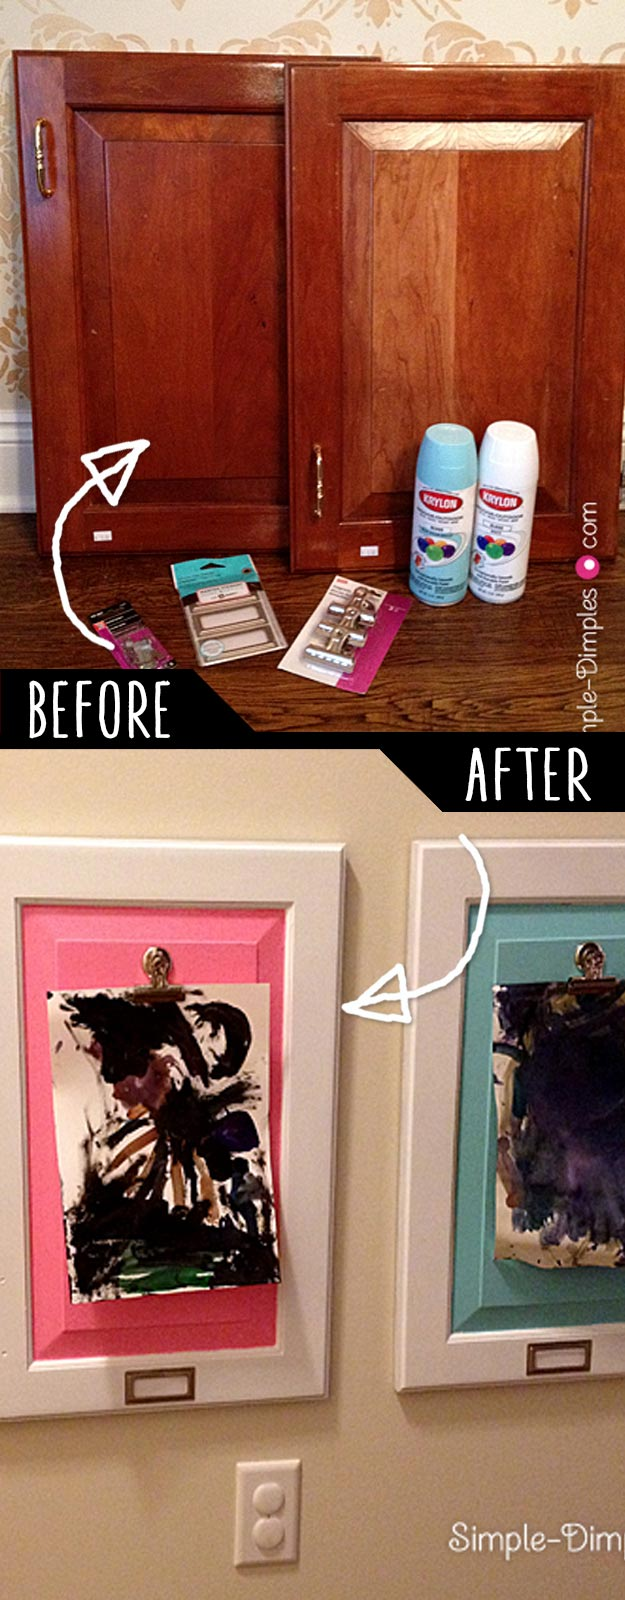 DIY Furniture Hacks | Artwork Display for Children using Cabinet Doors | Cool Ideas for Creative Do It Yourself Furniture Made From Things You Might Not Expect #diy